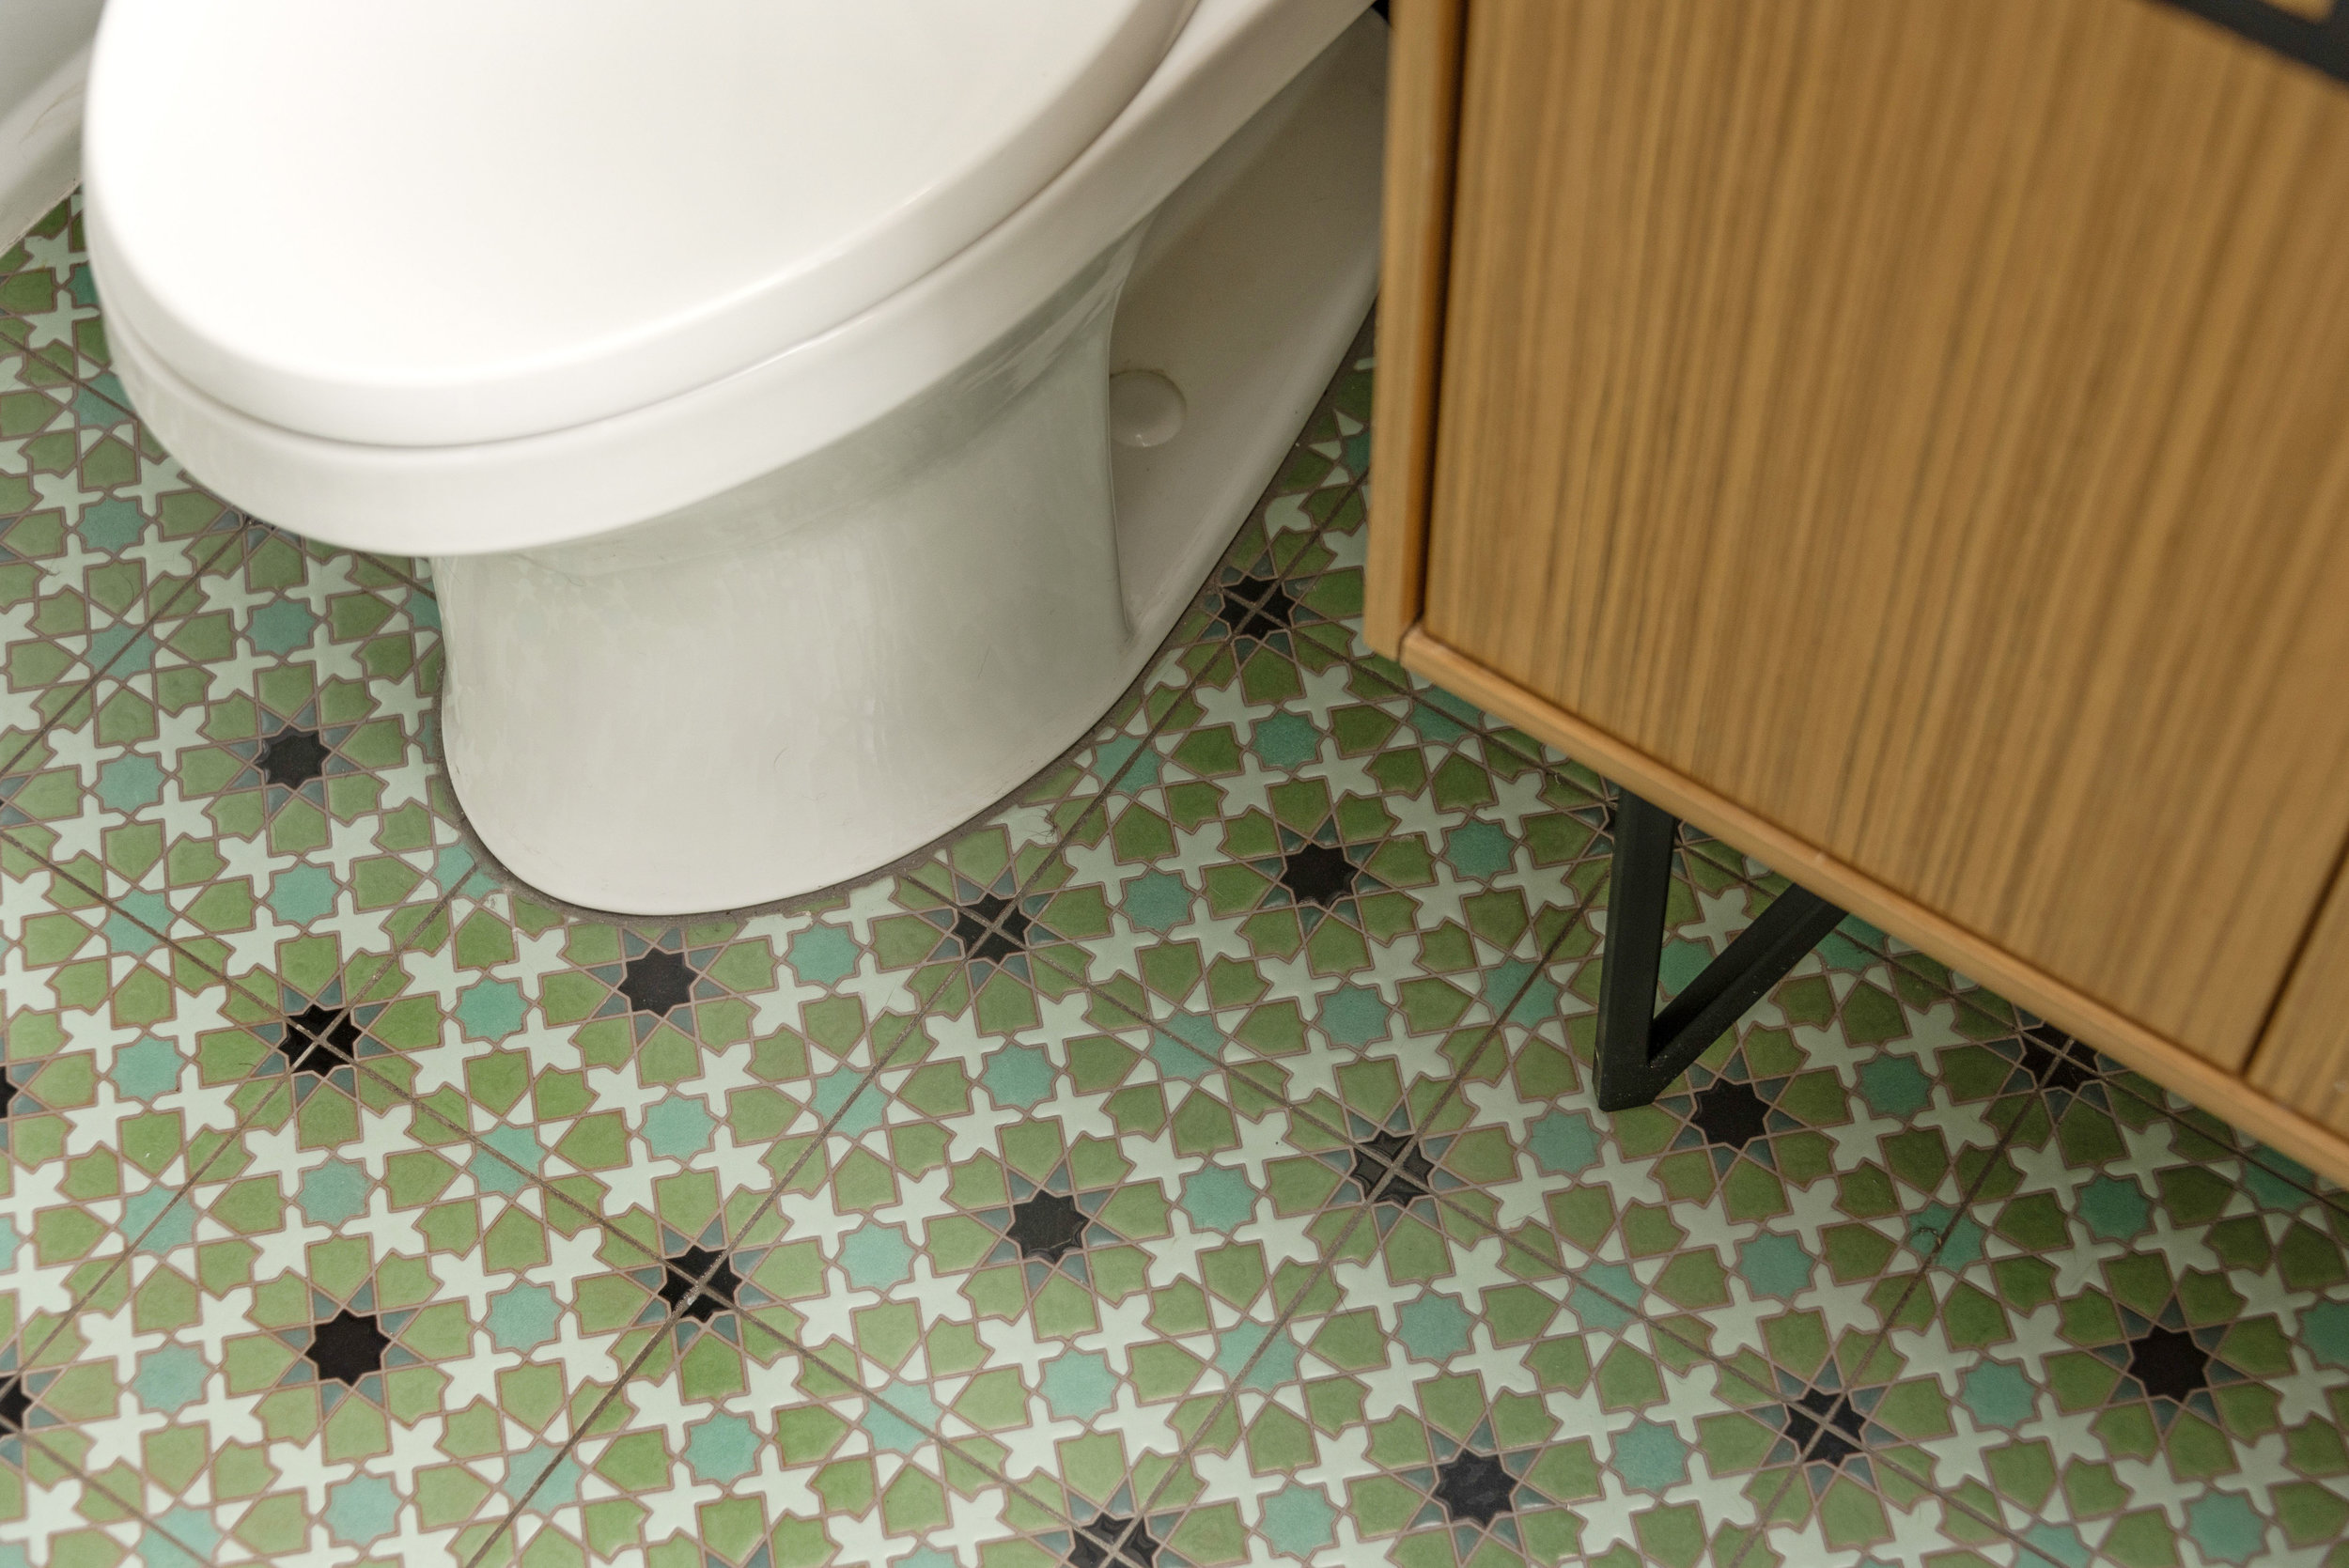 The  Kohler Jute vanity  in Corduroy Teak features classic Mid-Century hairpin legs. This is a great way to showcase the beautiful pattern  Fireclay tile floor .